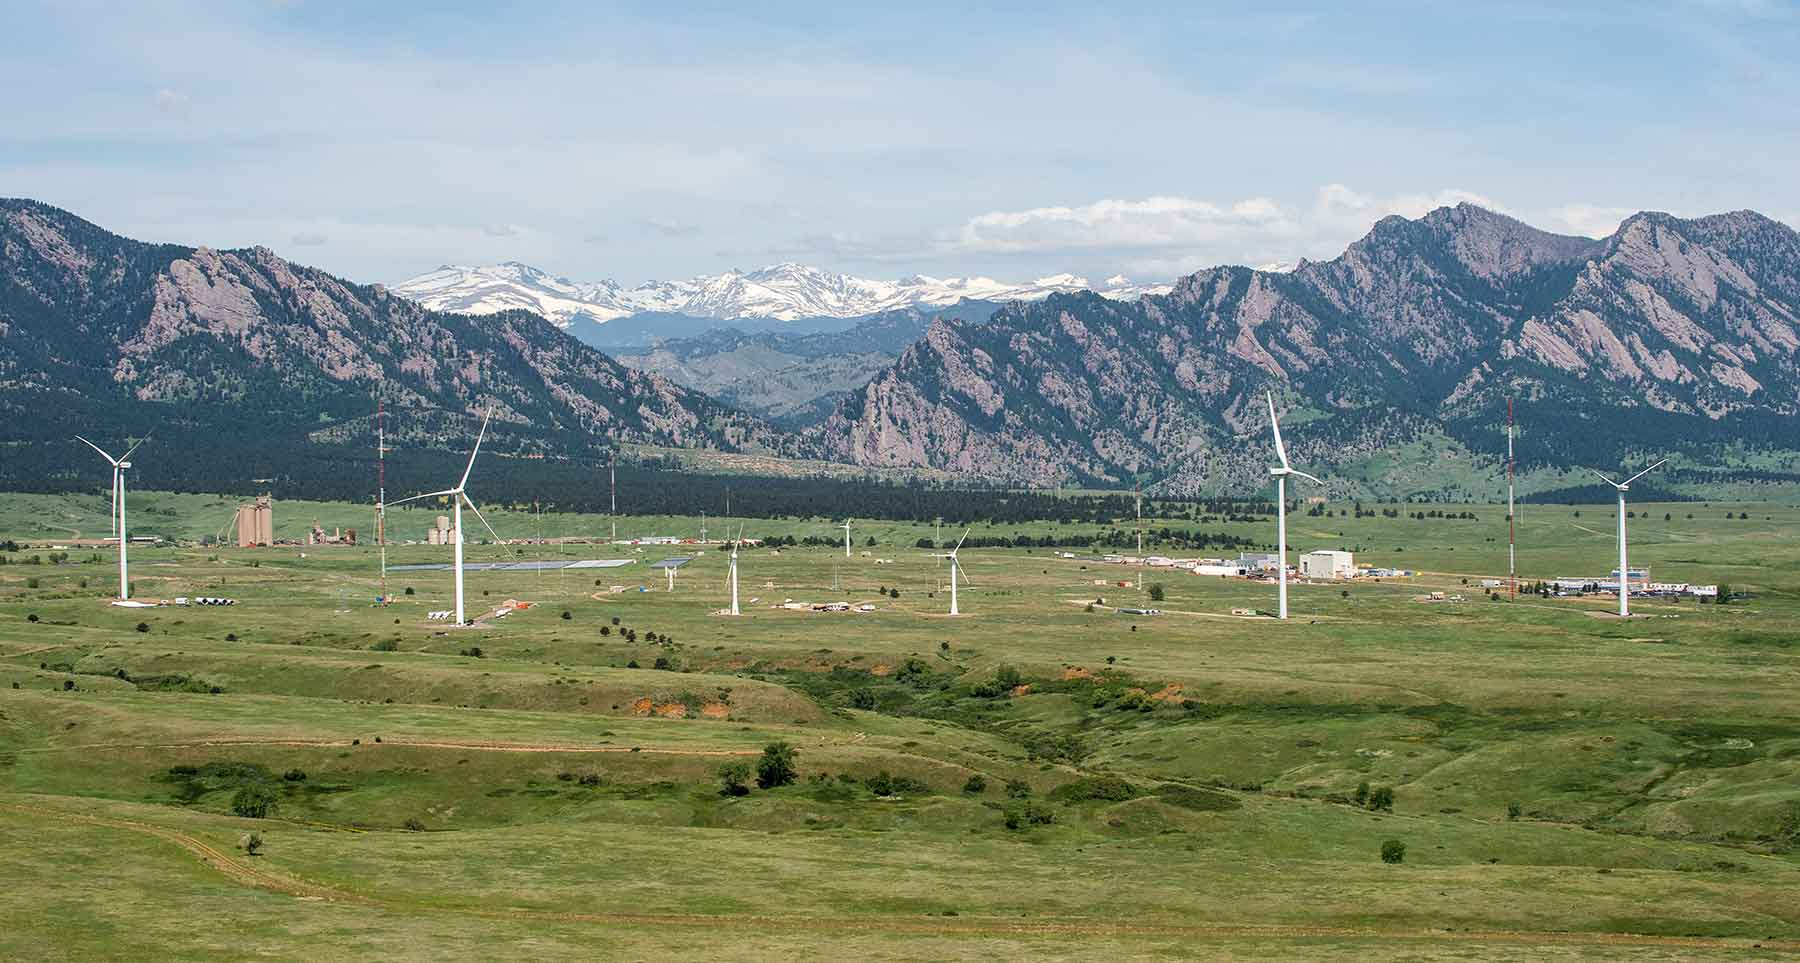 A wide aerial view of a wind turbine testing site and the landscape surrounding it. One large wind turbine is in the foreground with four other wind turbines behind it, as well as several buildings and met towers. Mountains are in the background